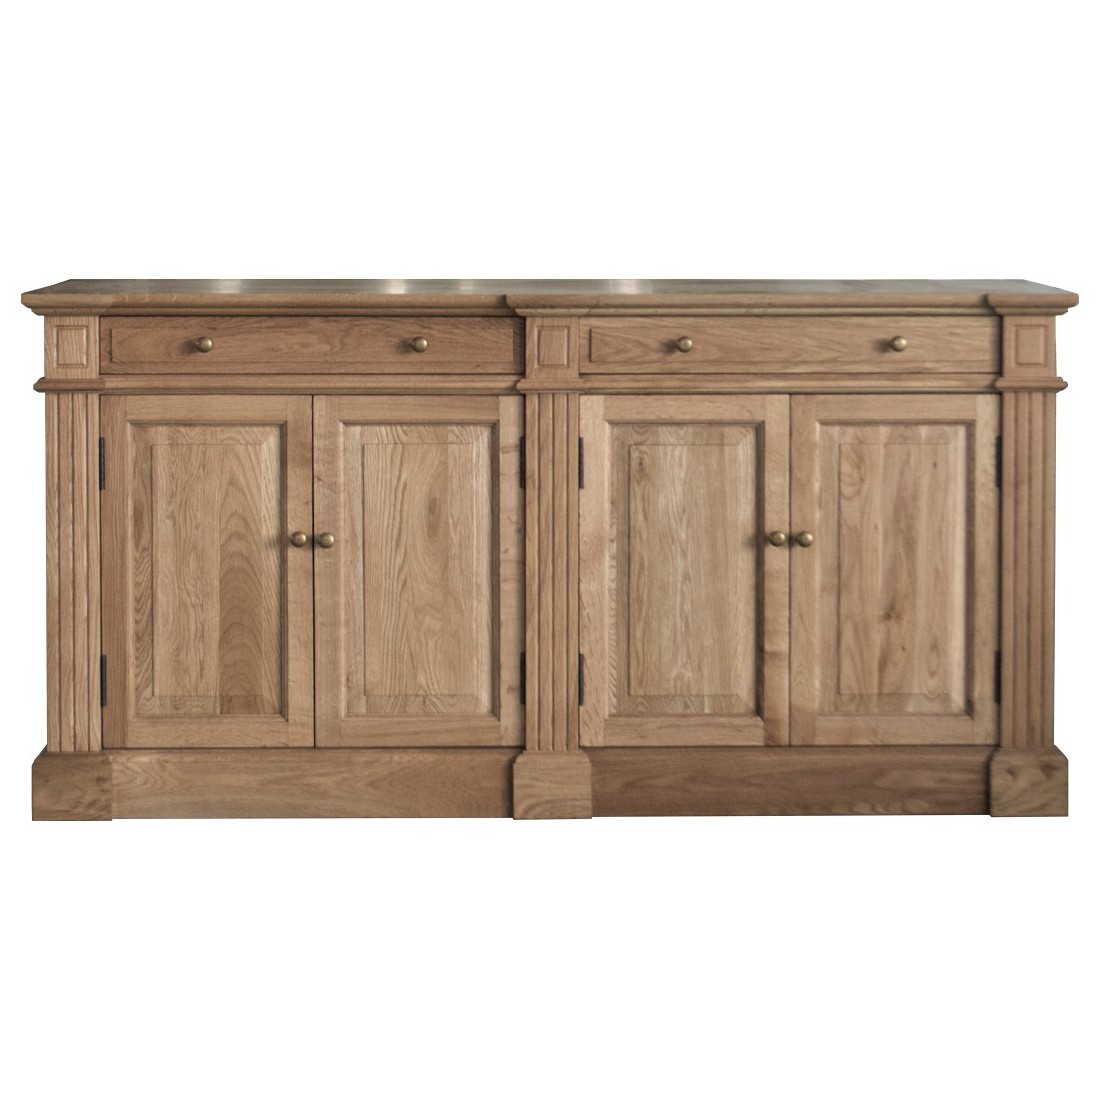 Robin Oak Timber 4 Door 2 Drawer Sideboard, 160cm, Natural Oak